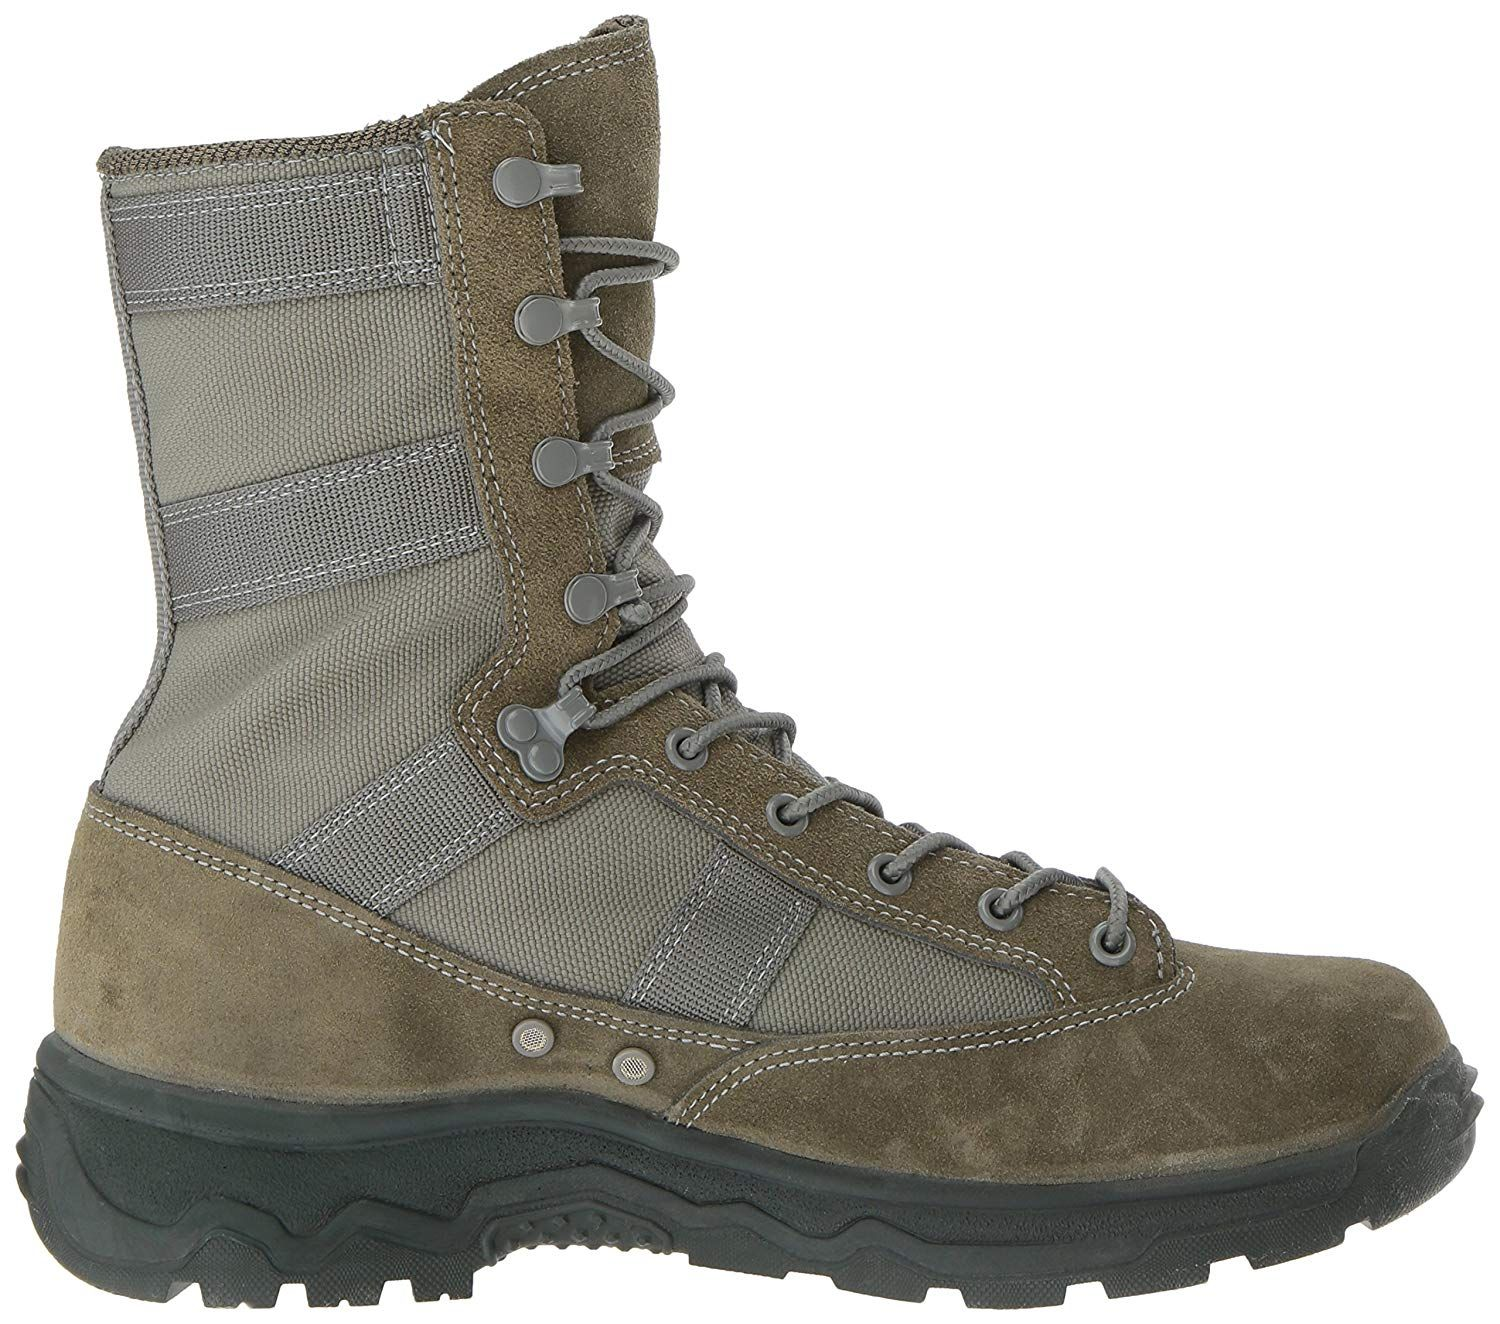 f081f6a5917 Amazon.com: Danner Men's Reckoning 8